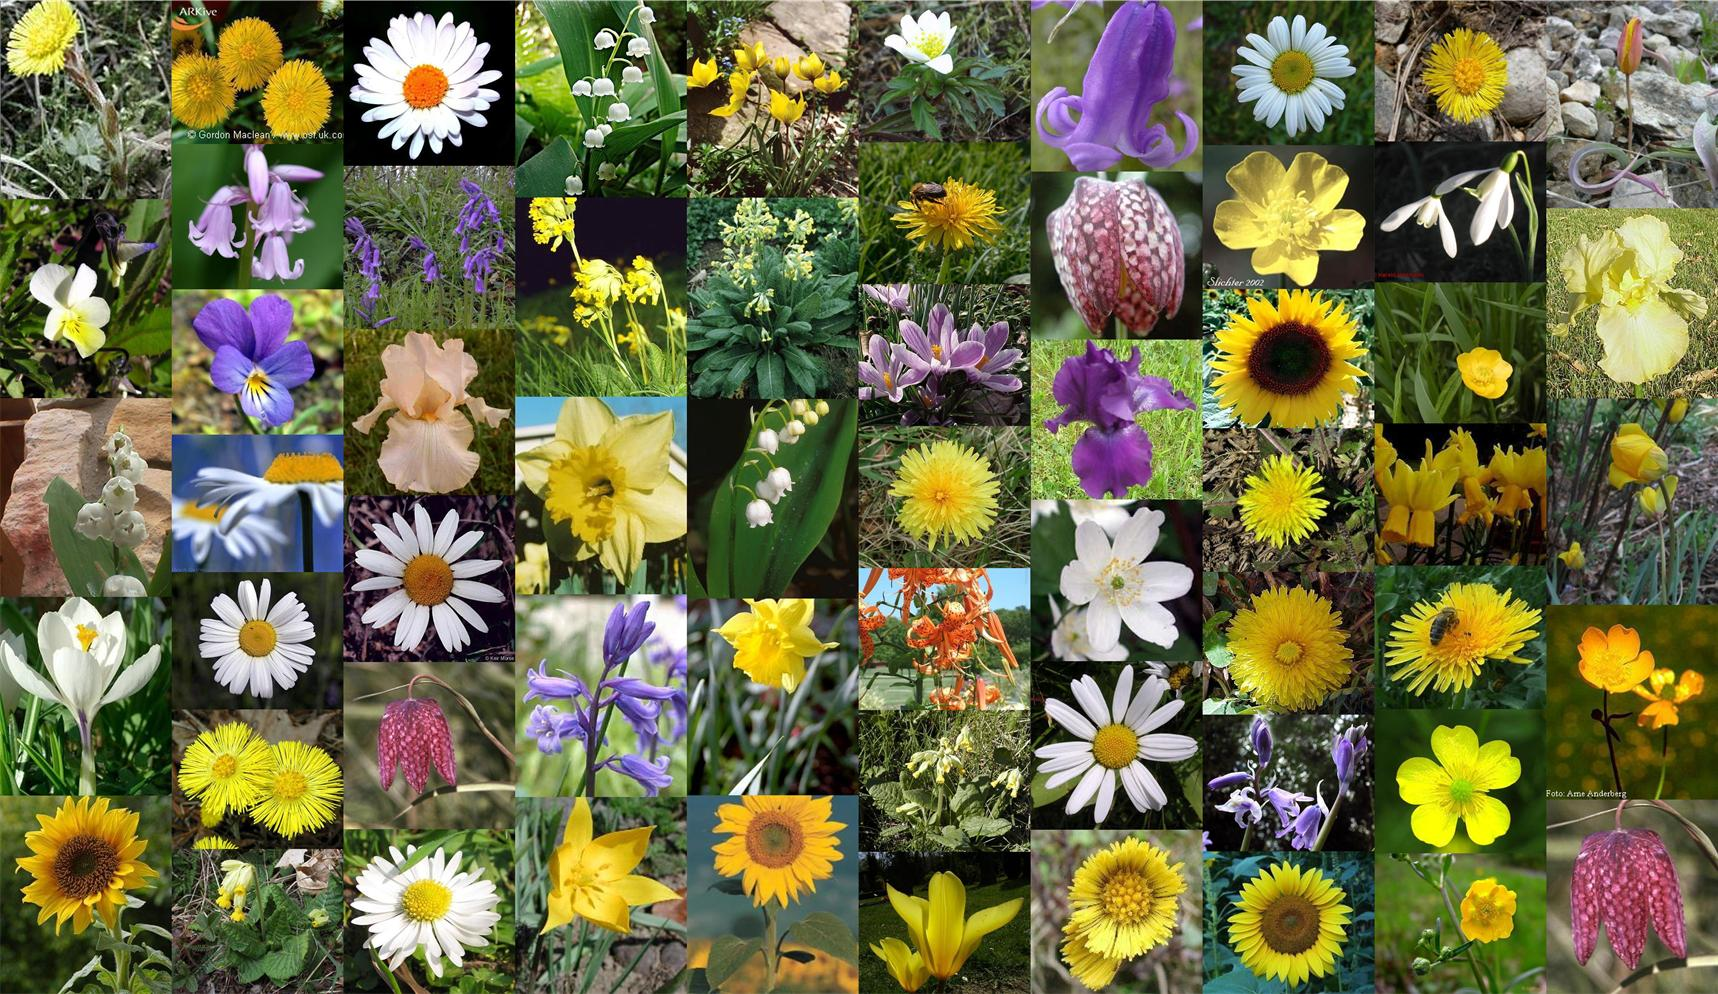 Image Collage of flower data set